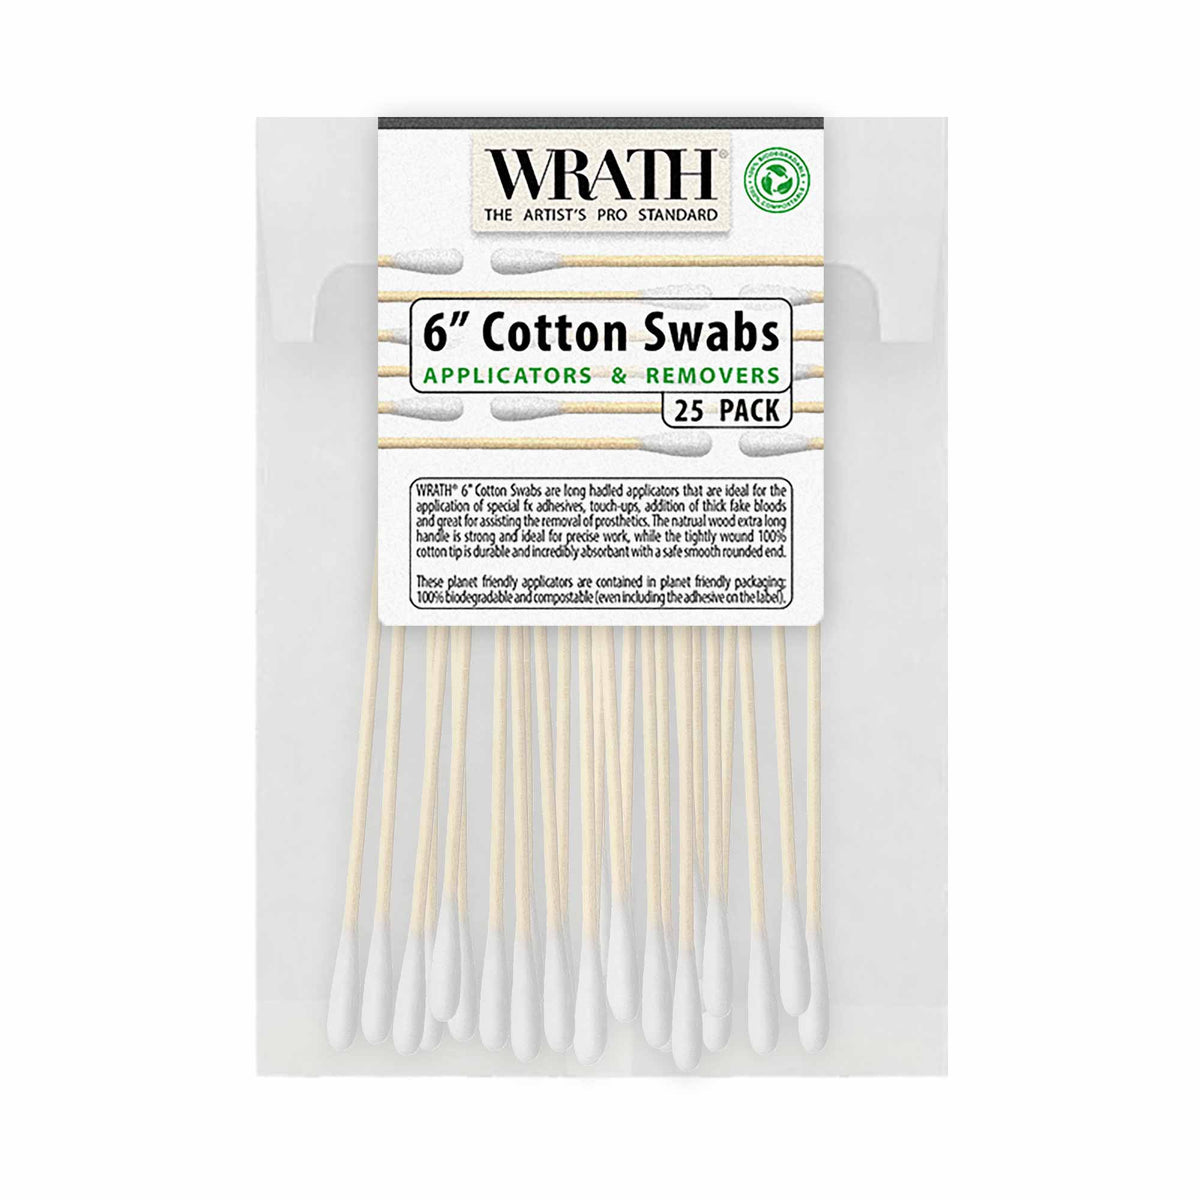 "WRATH 6"" Cotton Swabs - Biodegradable"